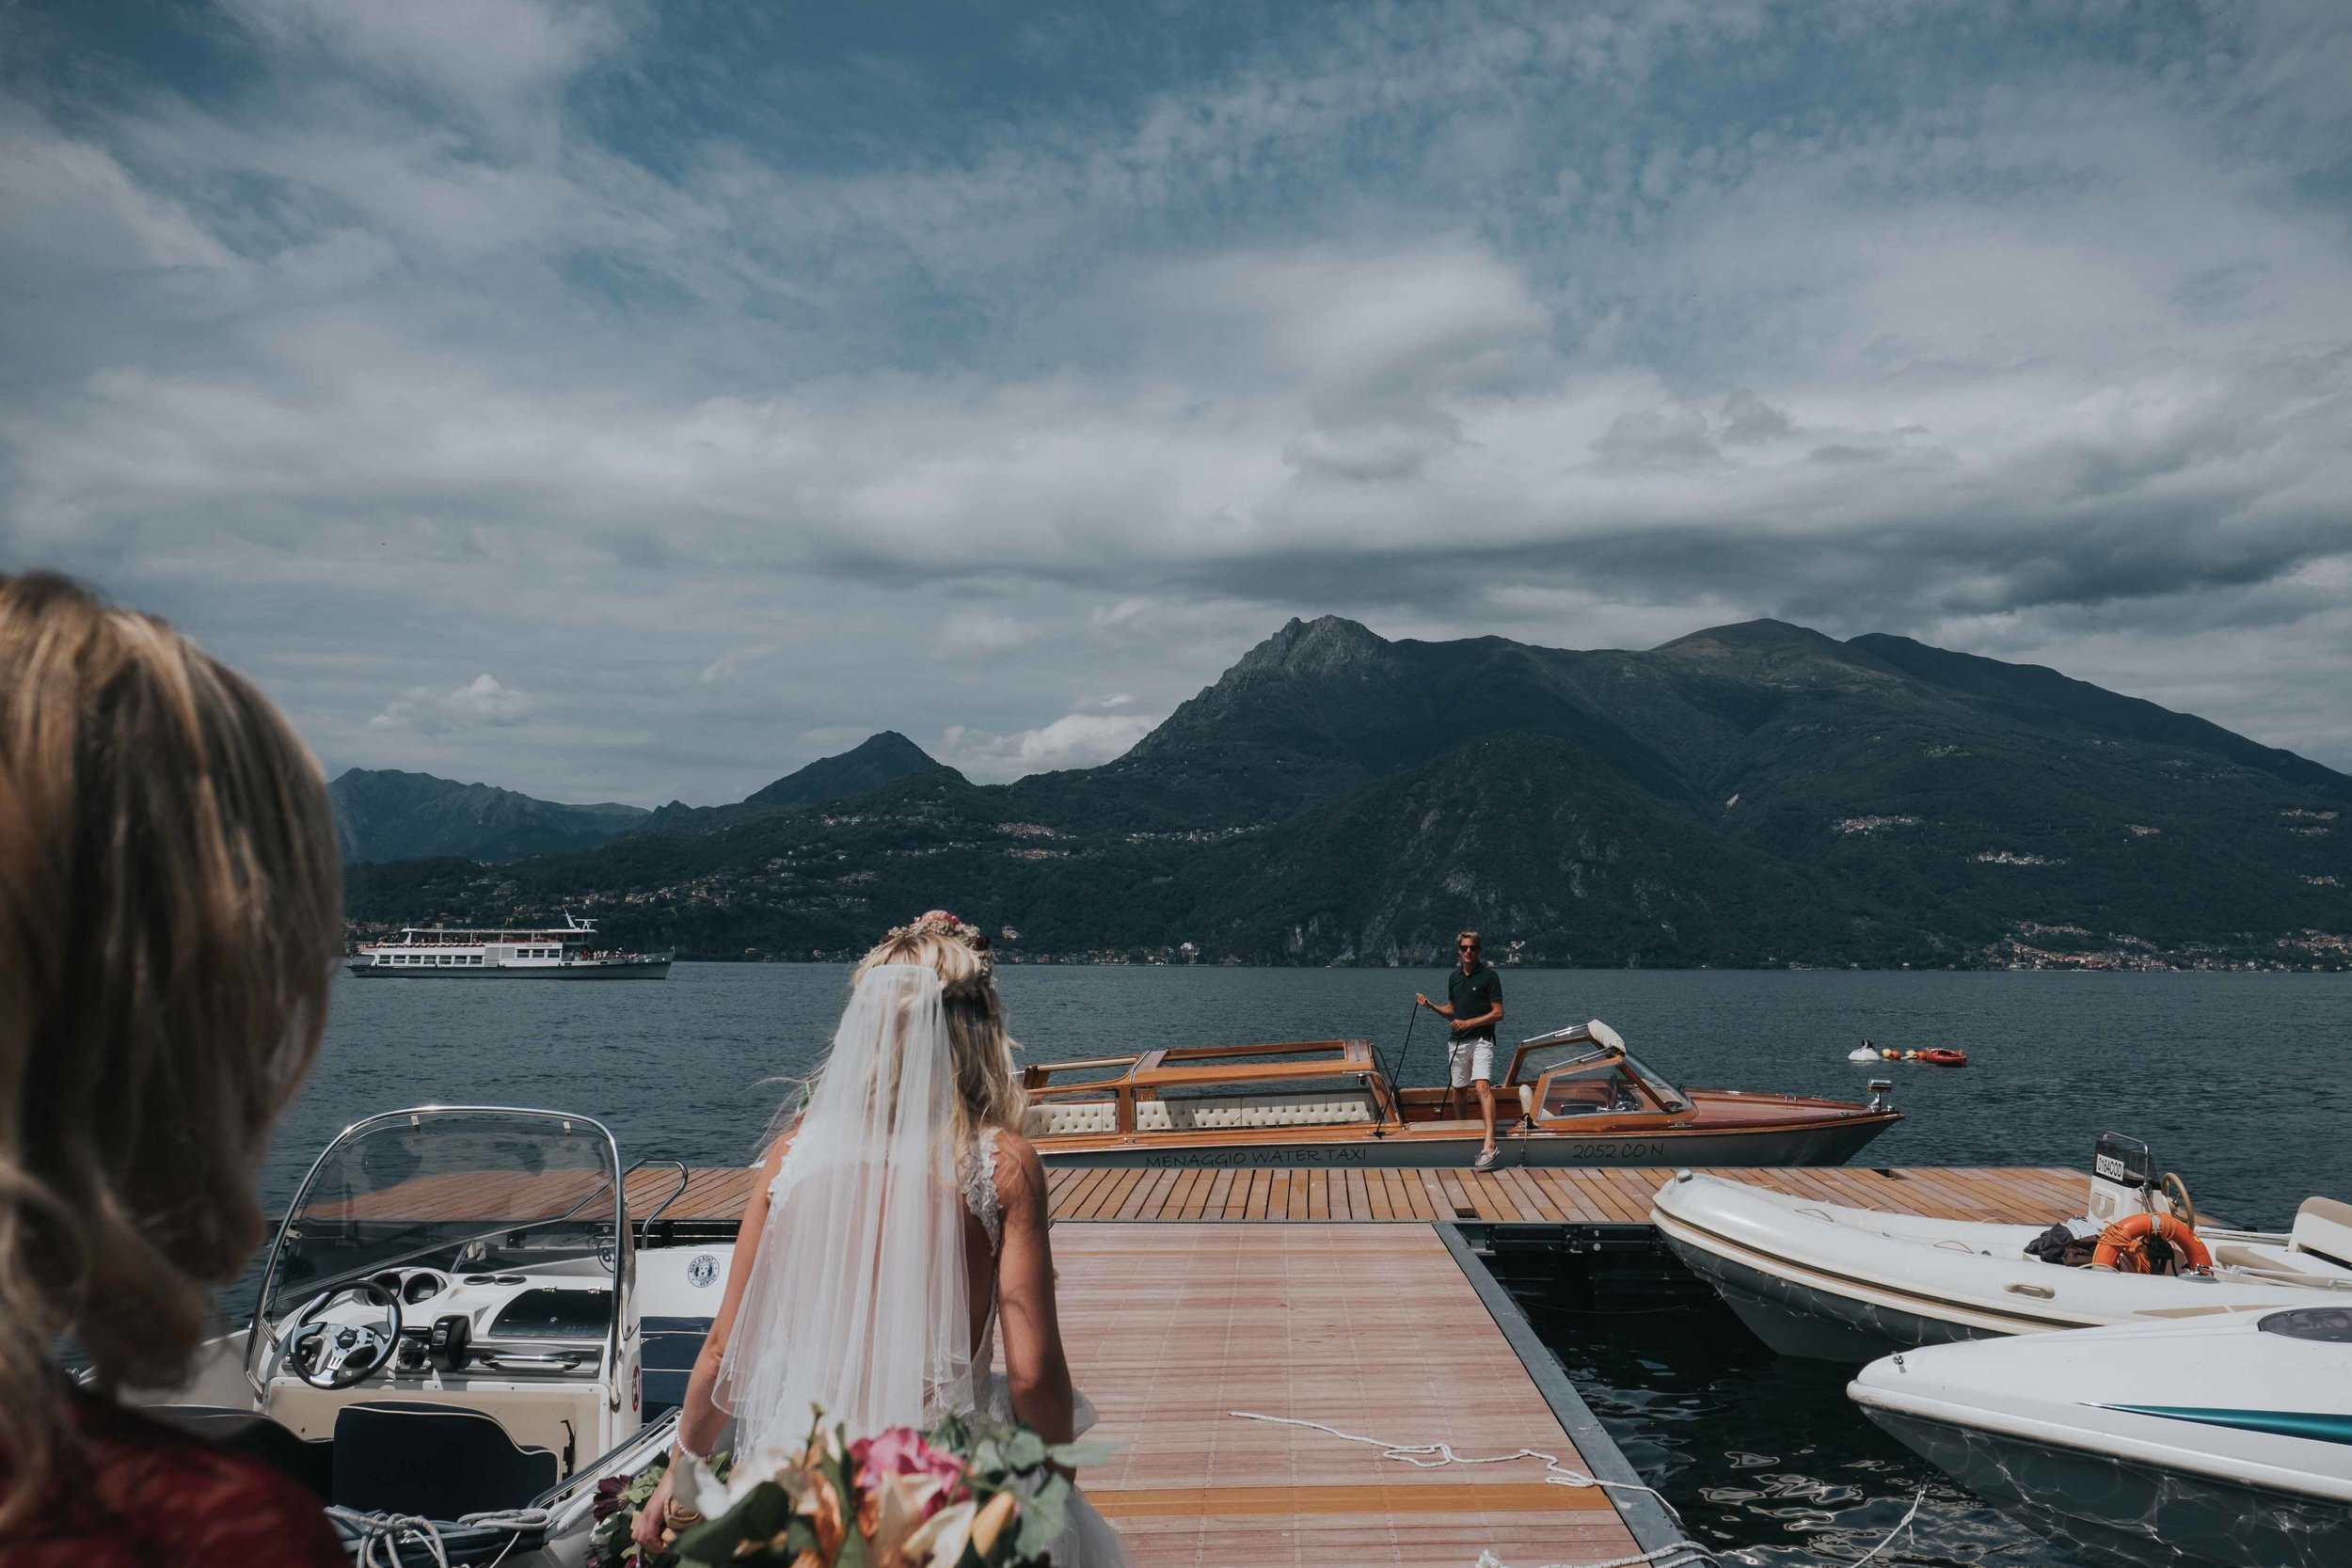 Laco Como Italy destination wedding photographer cheshire north west england documentry photography (36 of 117).jpg